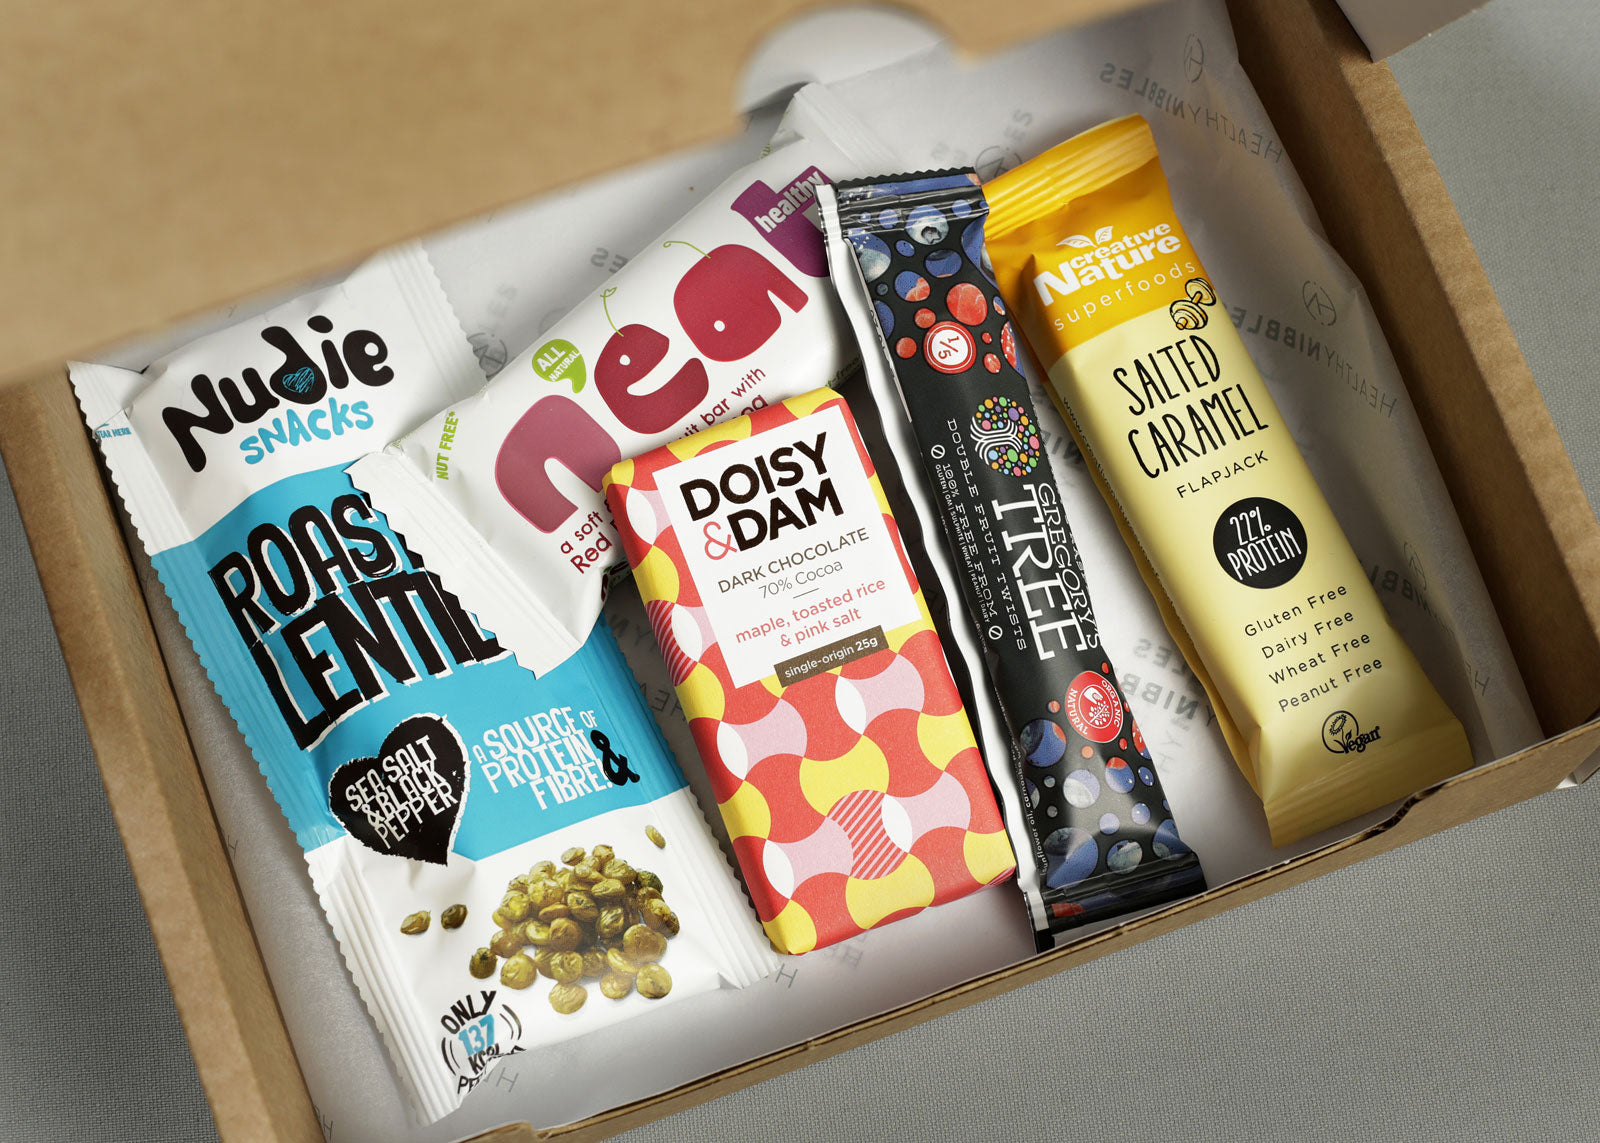 Nut-free healthy snack boxes - great to graze on